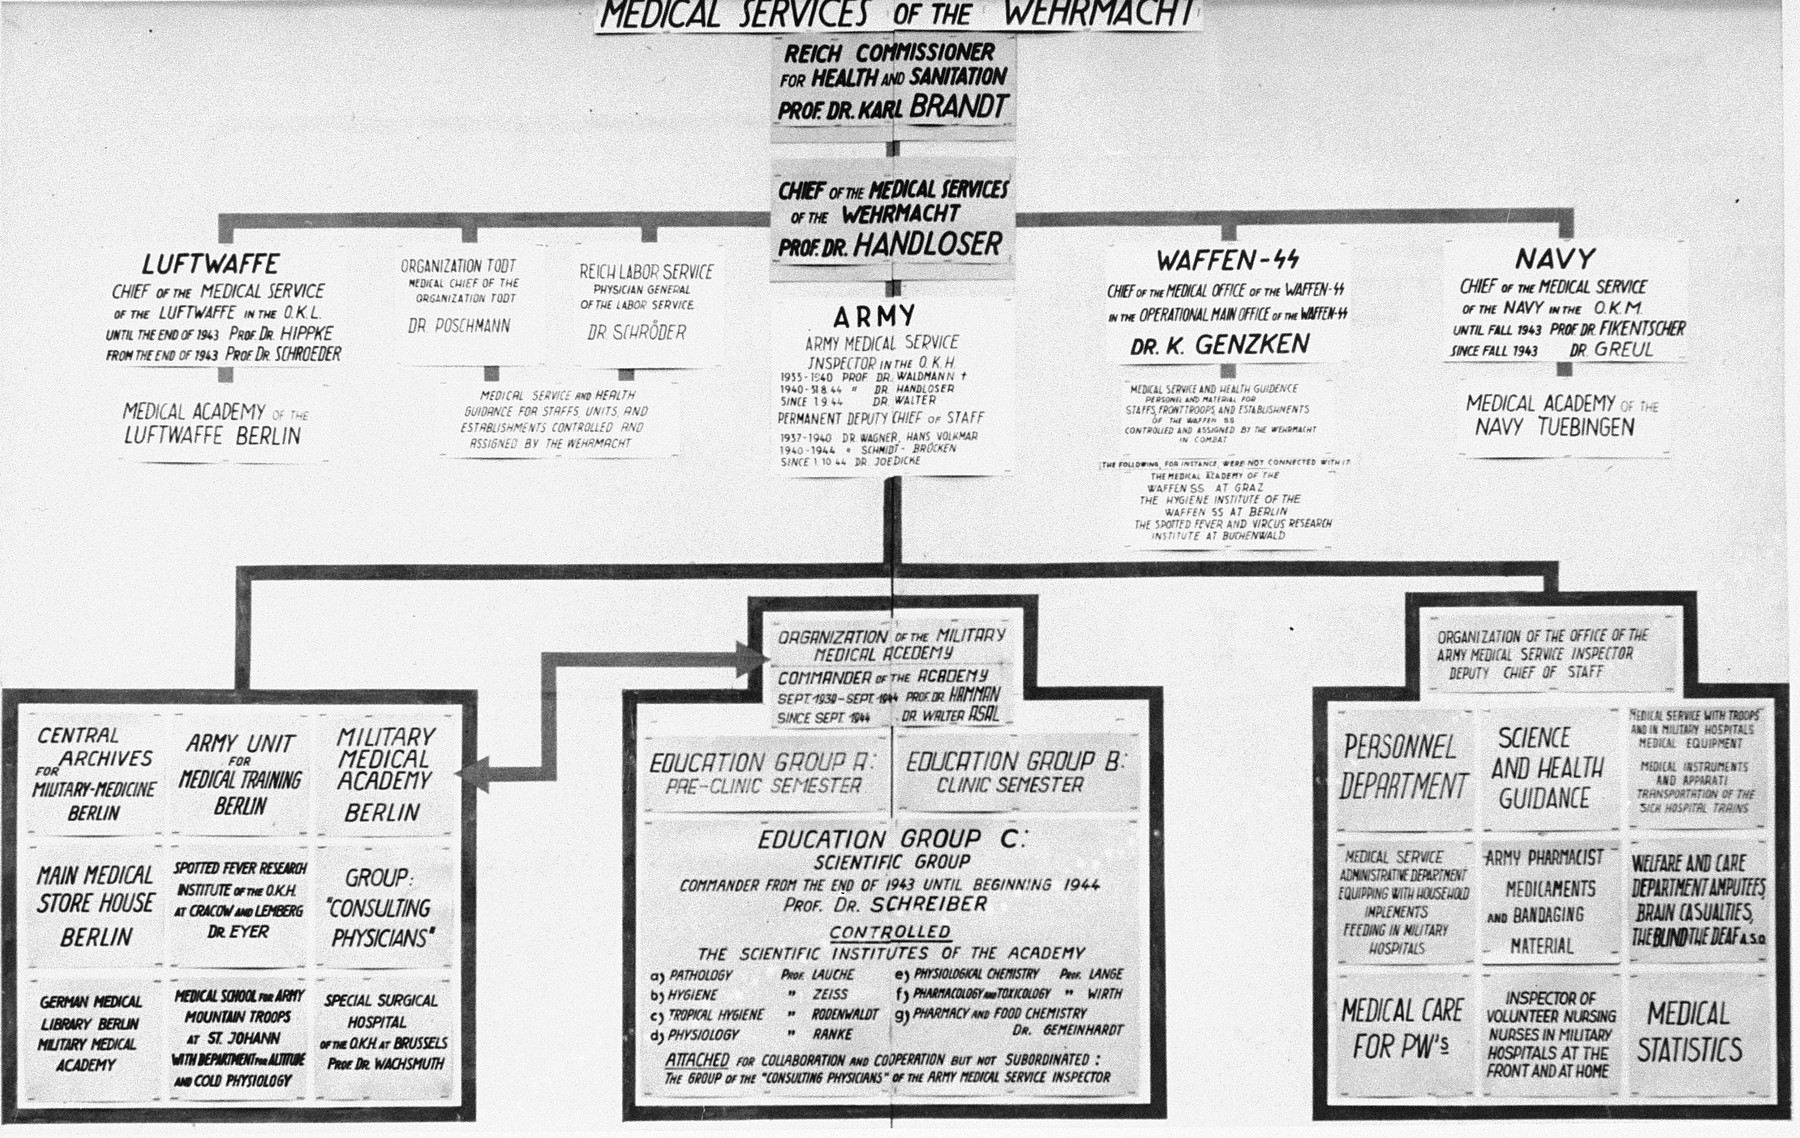 A chart illustrating the organization and hierarchy of the medical services in the German army which was used during the Medical Case Trial in Nuremberg.